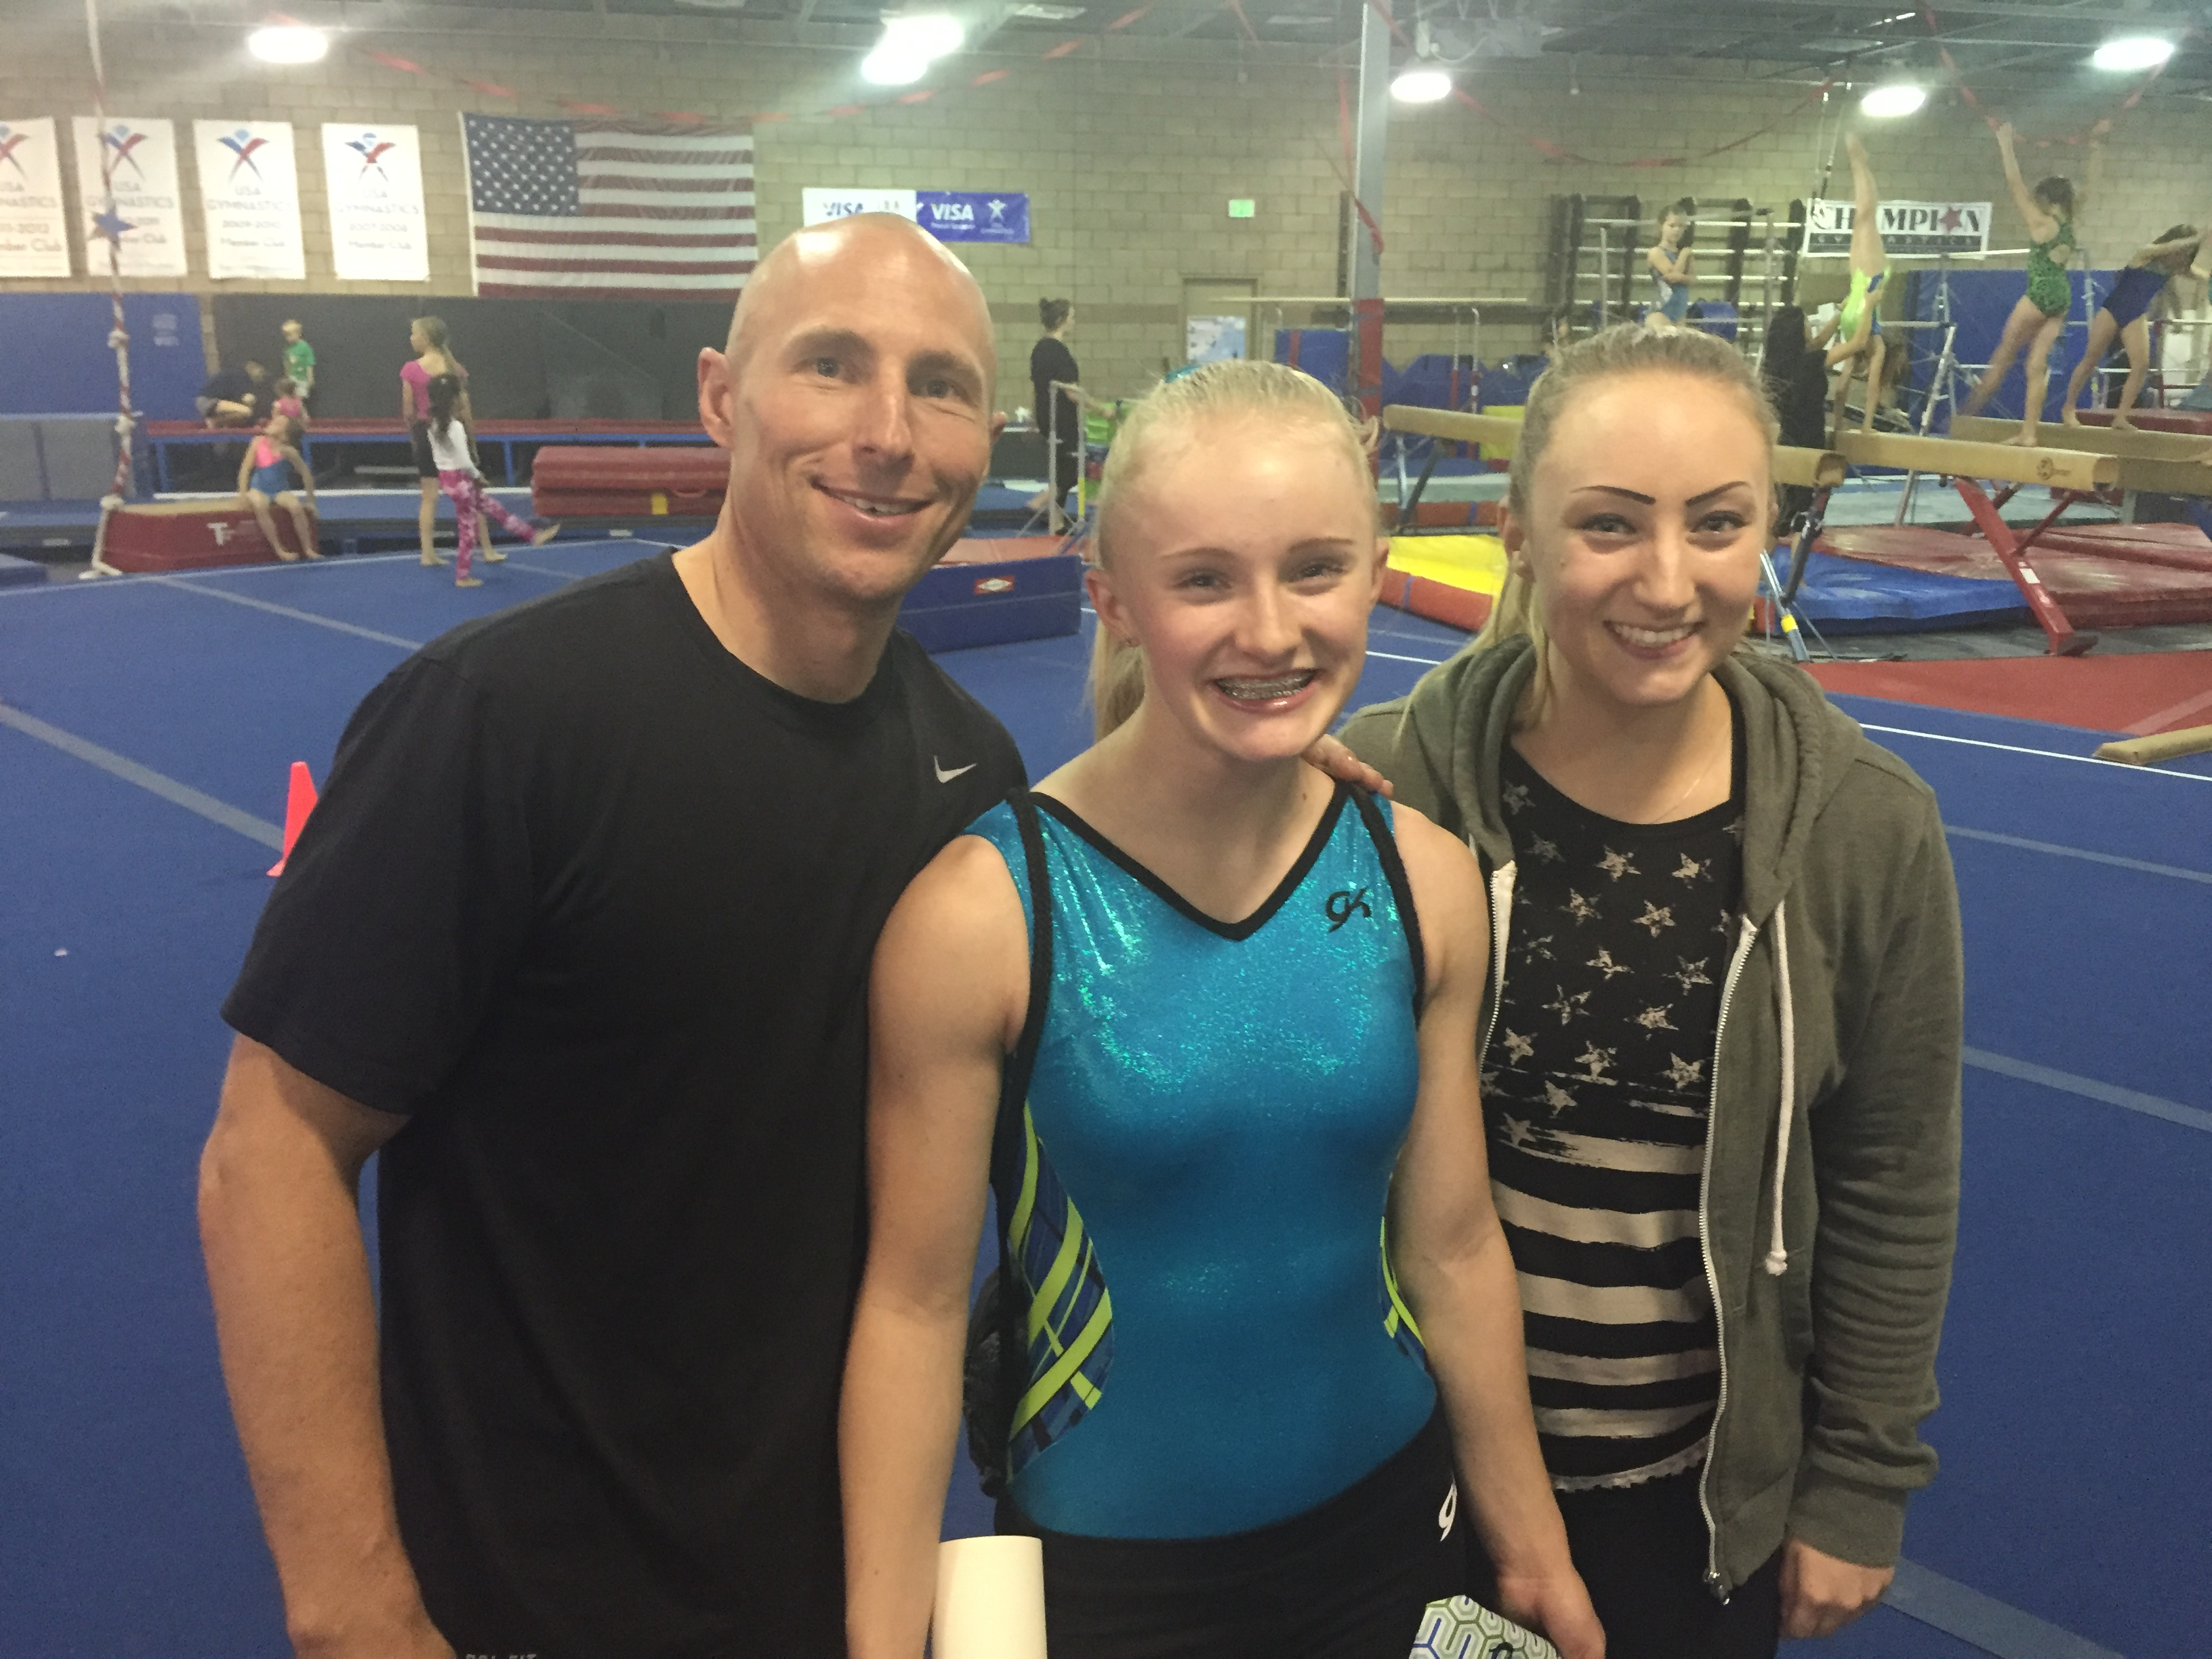 Rebekah Bean (center) with her coaches Jeremy Graff and Erika Almondinger. USA Gymnastics Level 9 2016 Women's Junior Olympic Western Championships, Adams Center, University of Montana, Missoula, Montana, May 1, 2016 | Photo courtesy of Laura Bean, St. George News